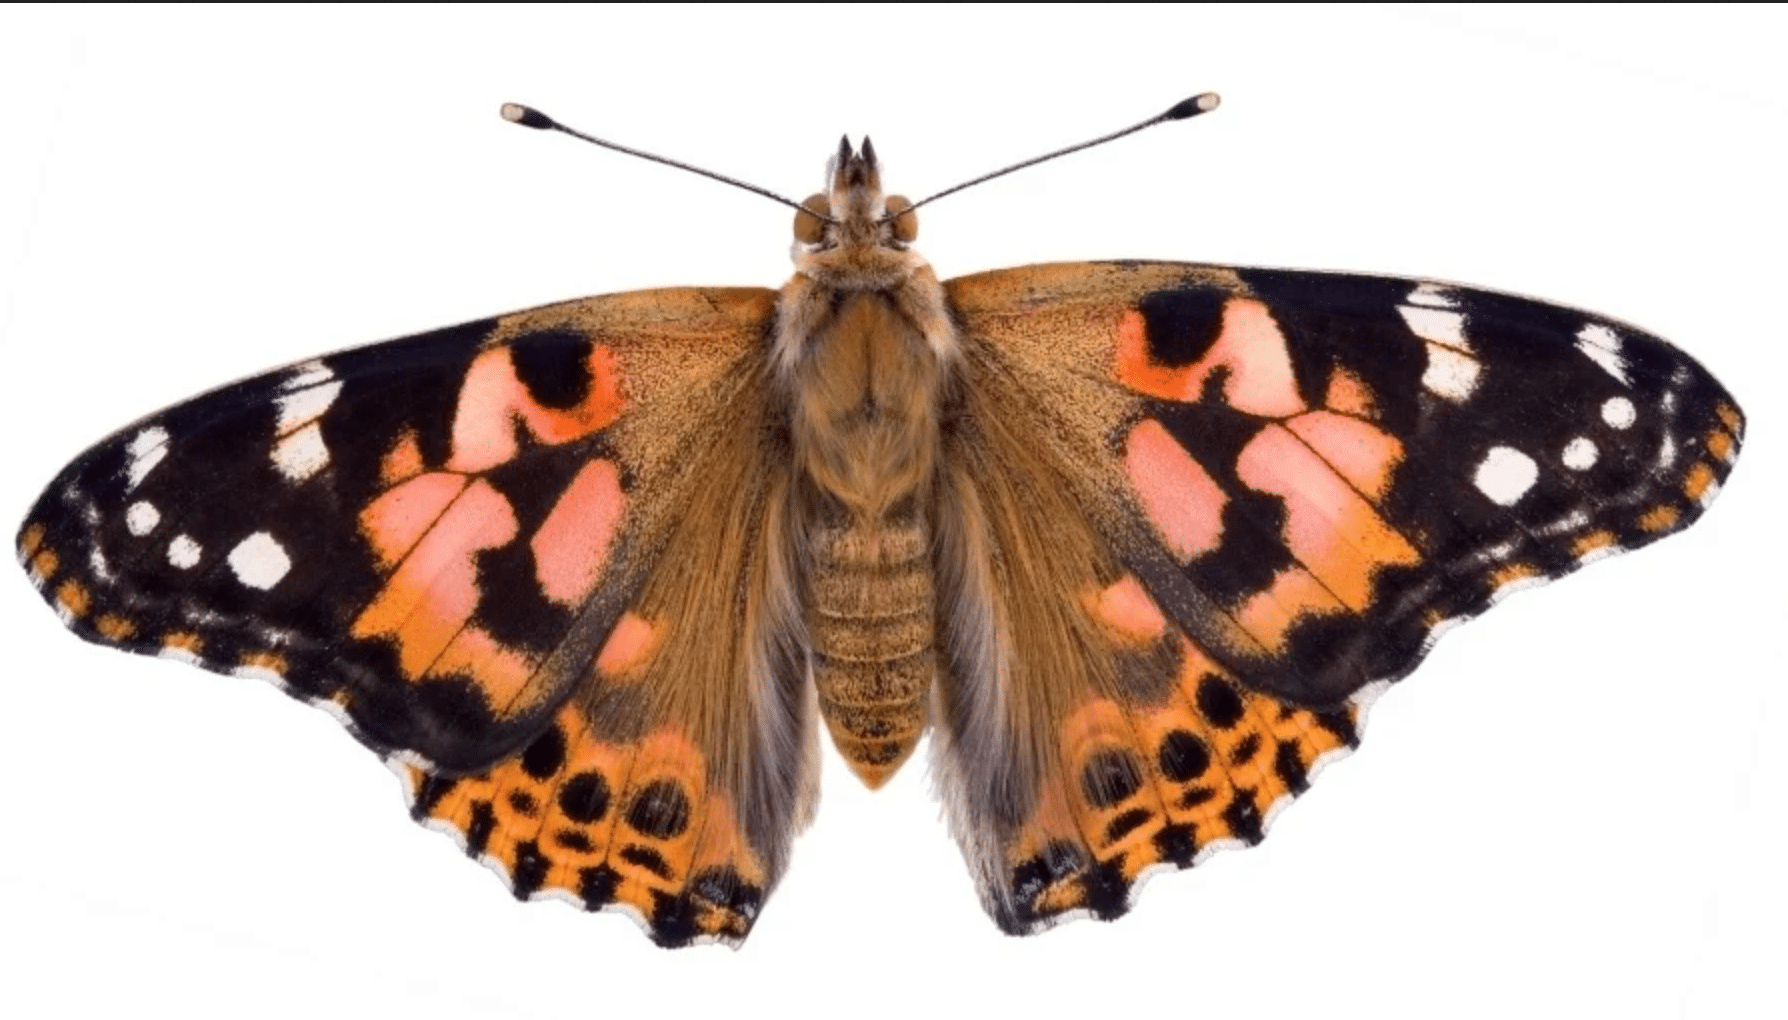 An image of a Painted Lady butterfly.